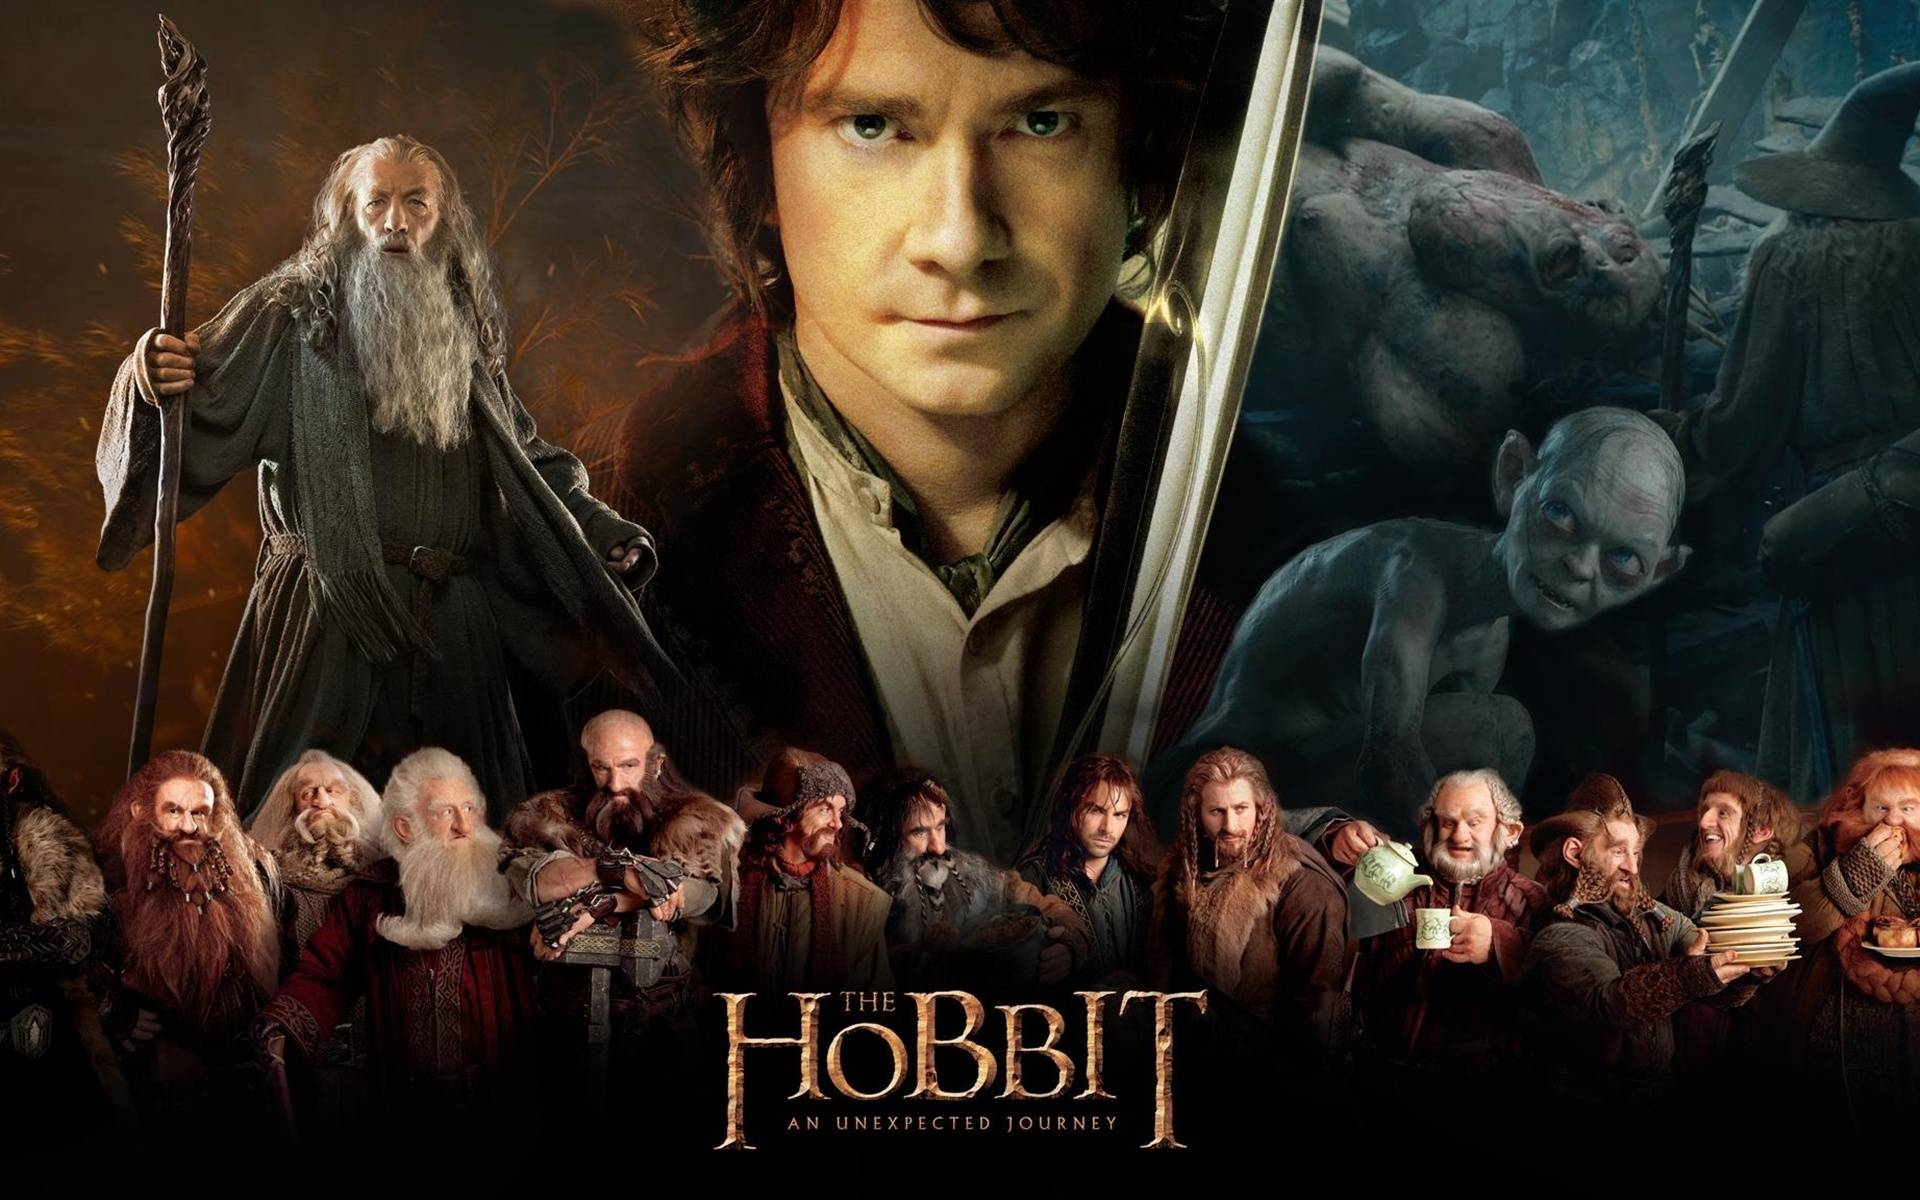 Directed by Peter Jackson With Martin Freeman Ian McKellen Richard Armitage Andy Serkis A reluctant Hobbit Bilbo Baggins sets out to the Lonely Mountain with a